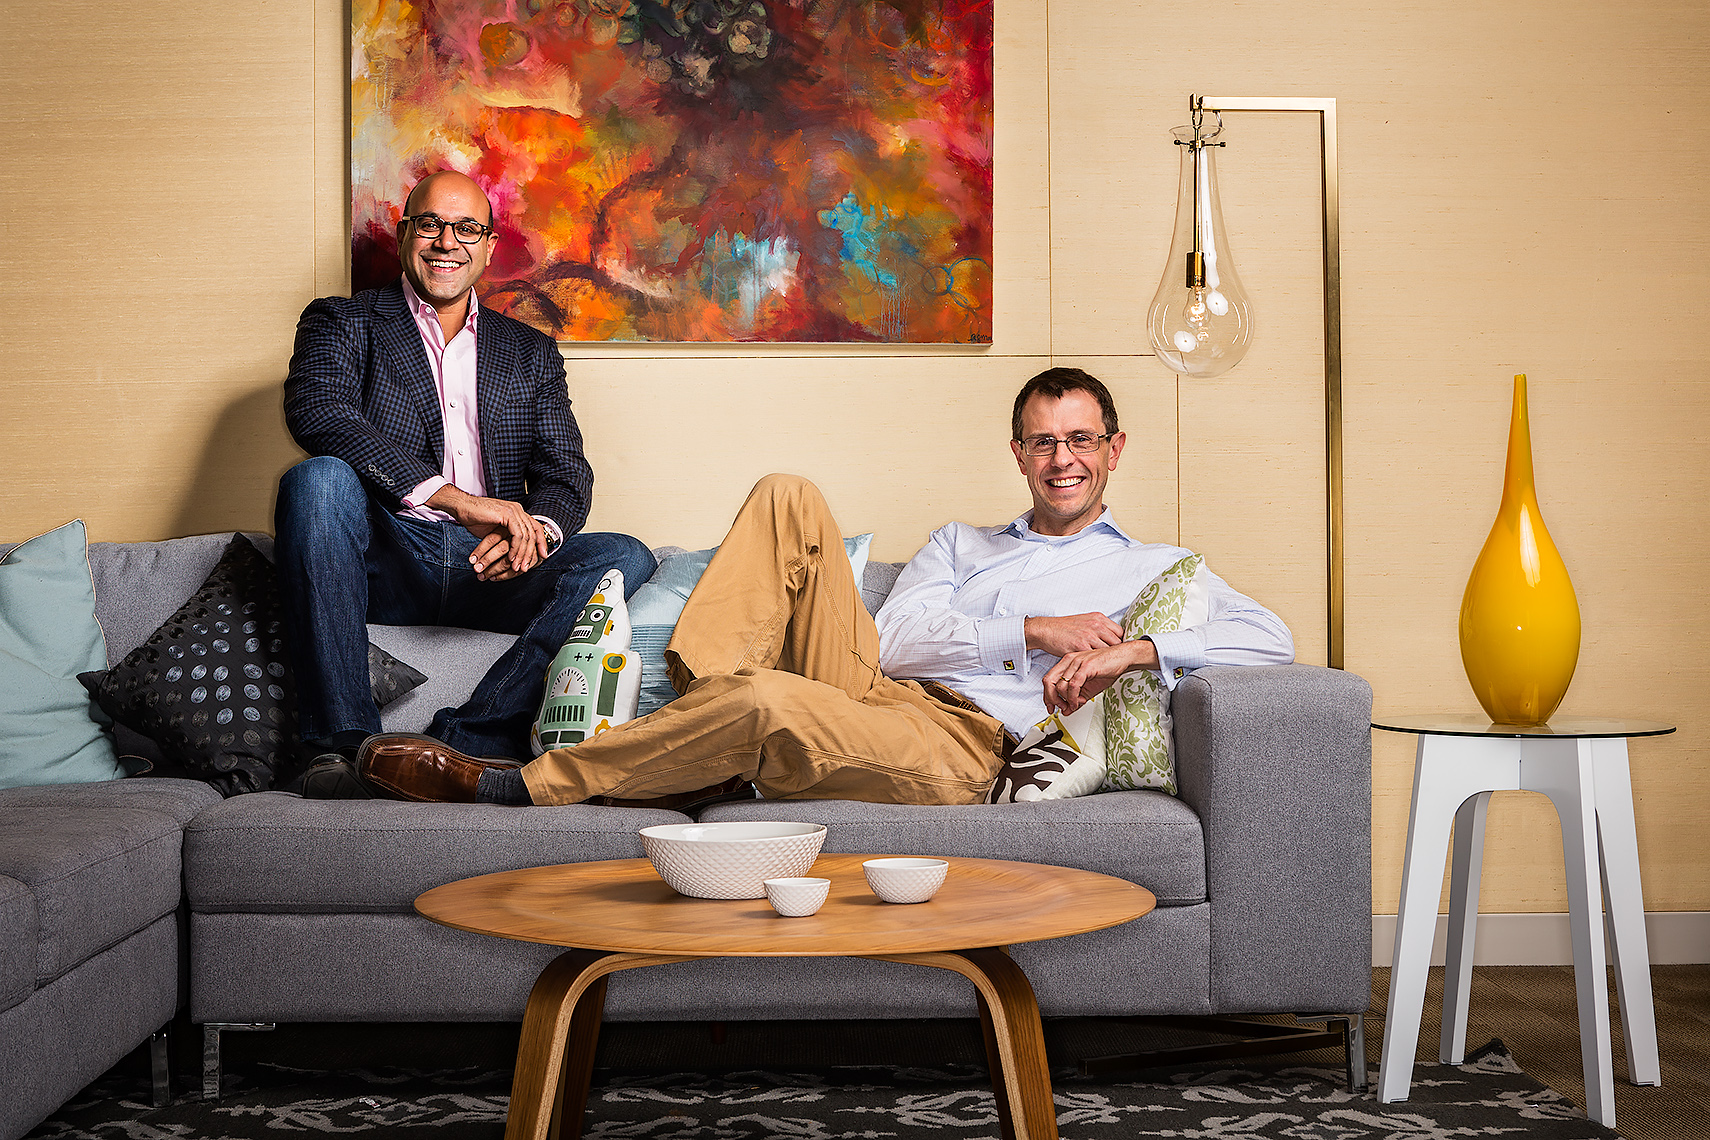 WAYFAIR FOUNDERS NIRAJ SHAH & STEVE CONINE • FORBES MAGAZINE • JASON GROW PHOTOGRAPHY